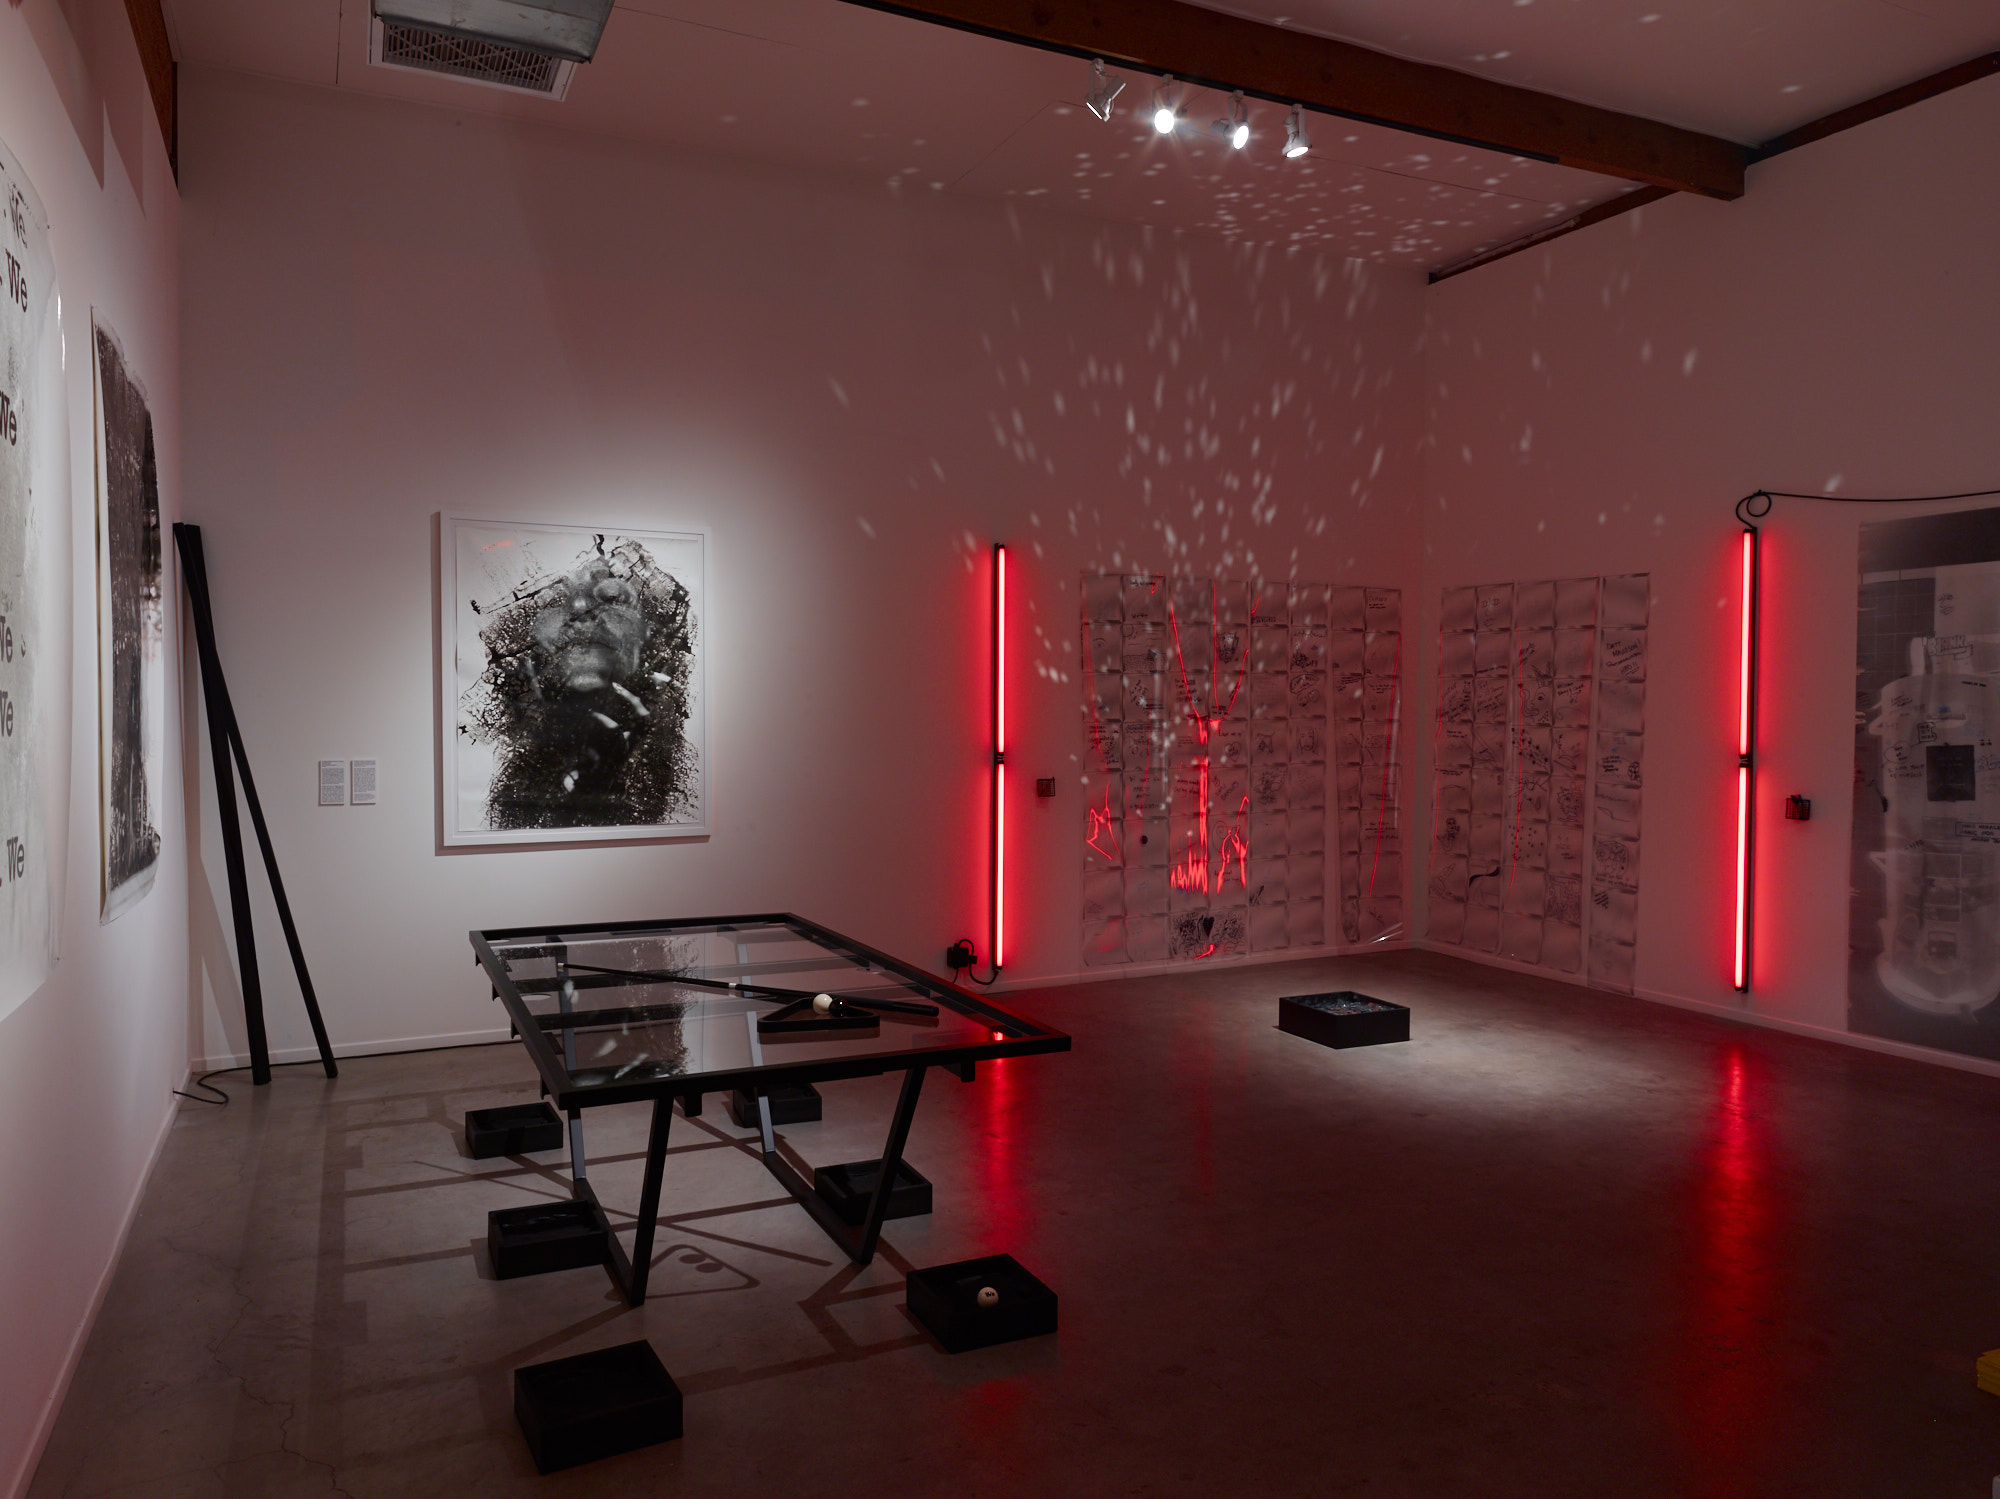 Installation, Collective Memory